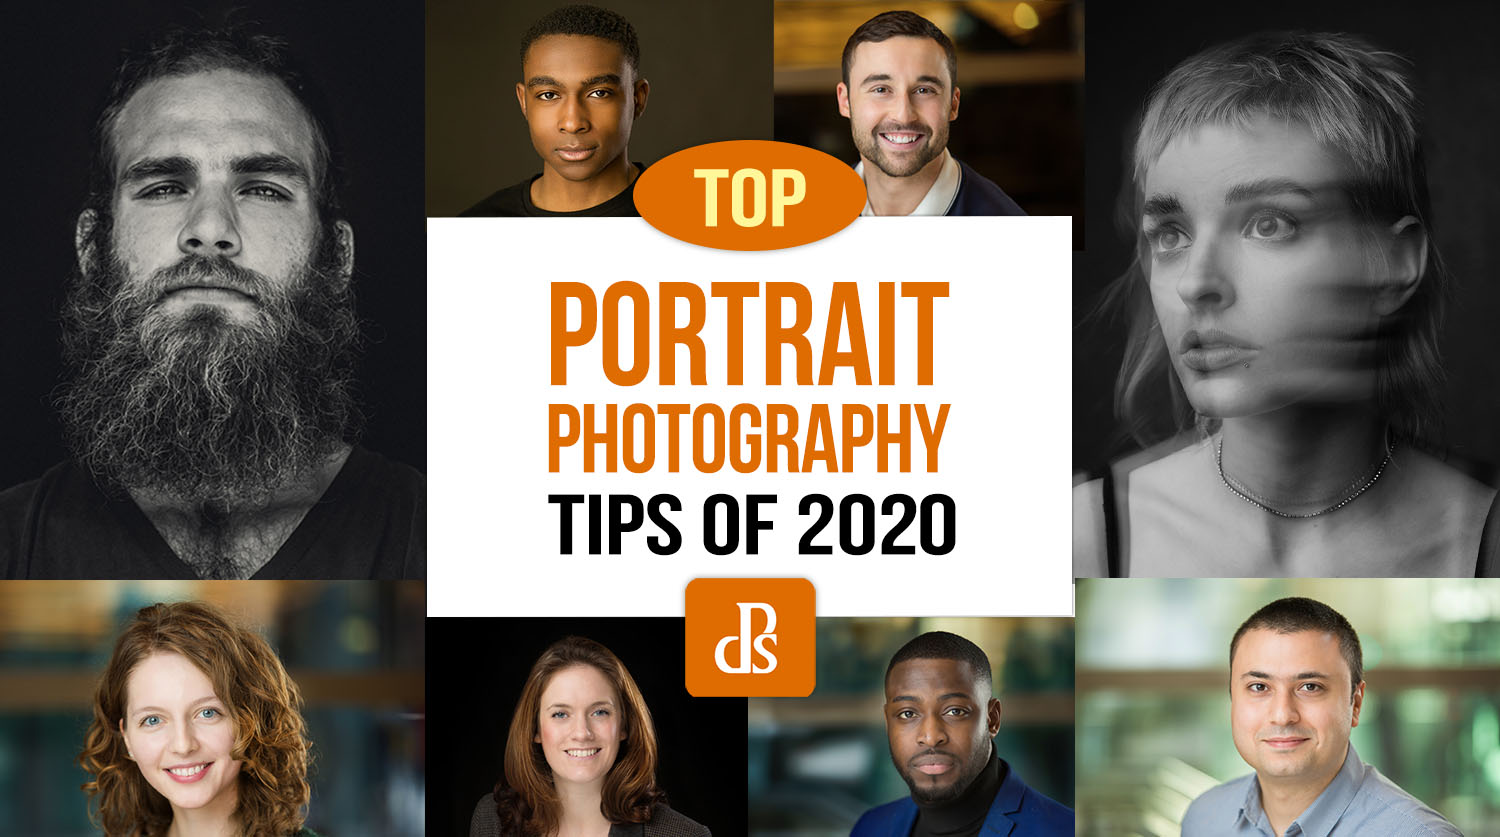 https://i2.wp.com/digital-photography-school.com/wp-content/uploads/2020/12/dps-top-portait-photography-tips-2020.jpg?resize=1500%2C837&ssl=1